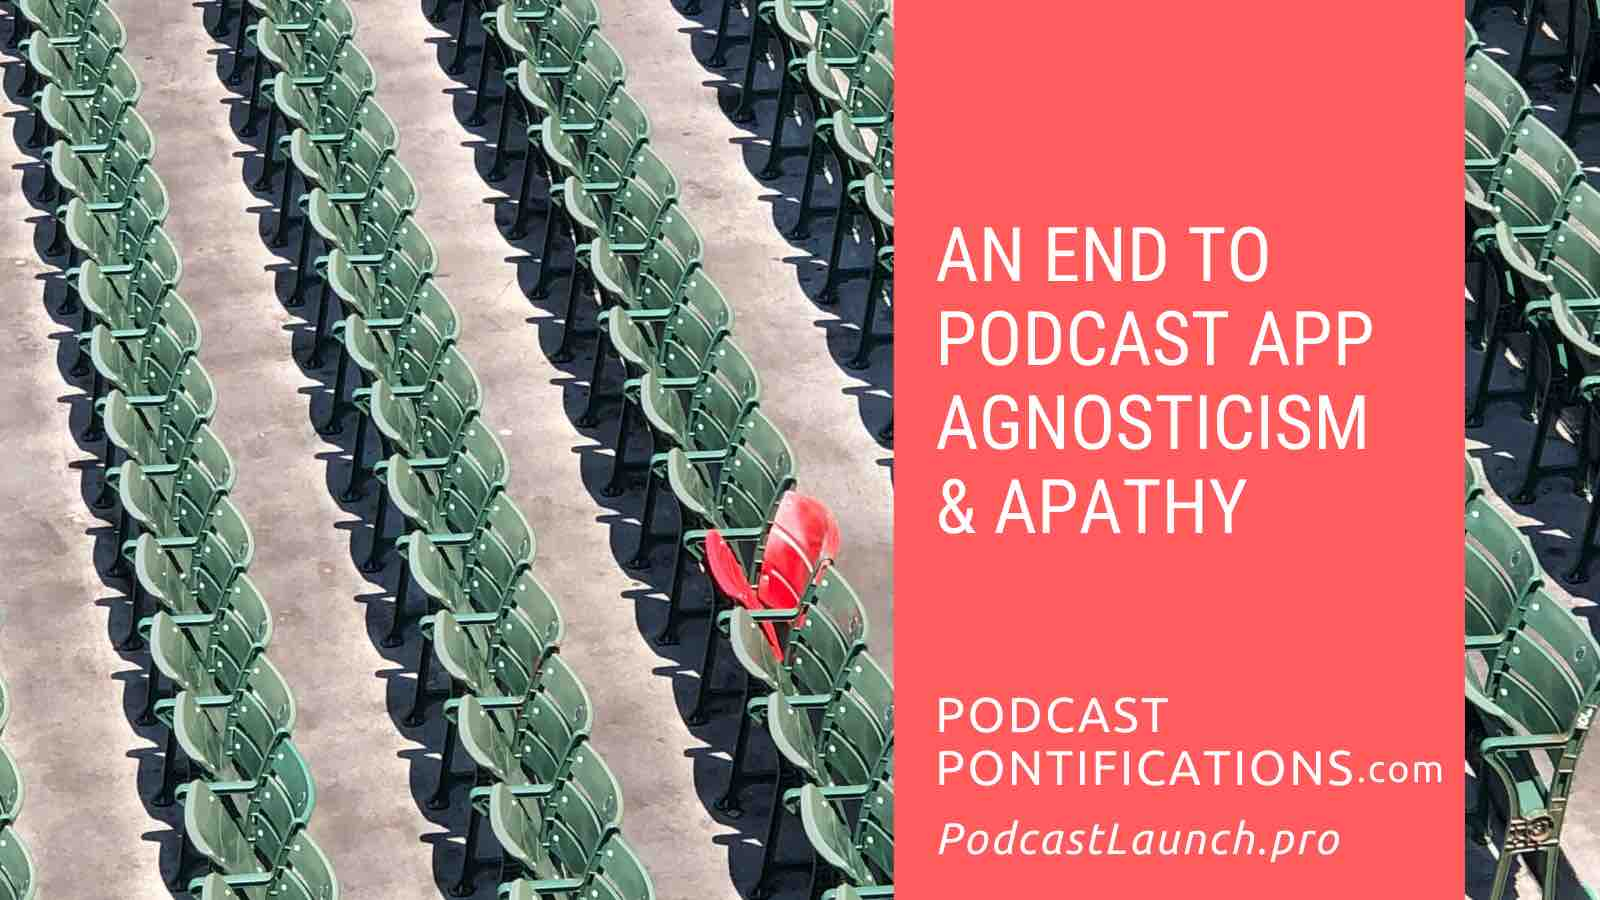 An End To Podcast App Agnosticism & Apathy